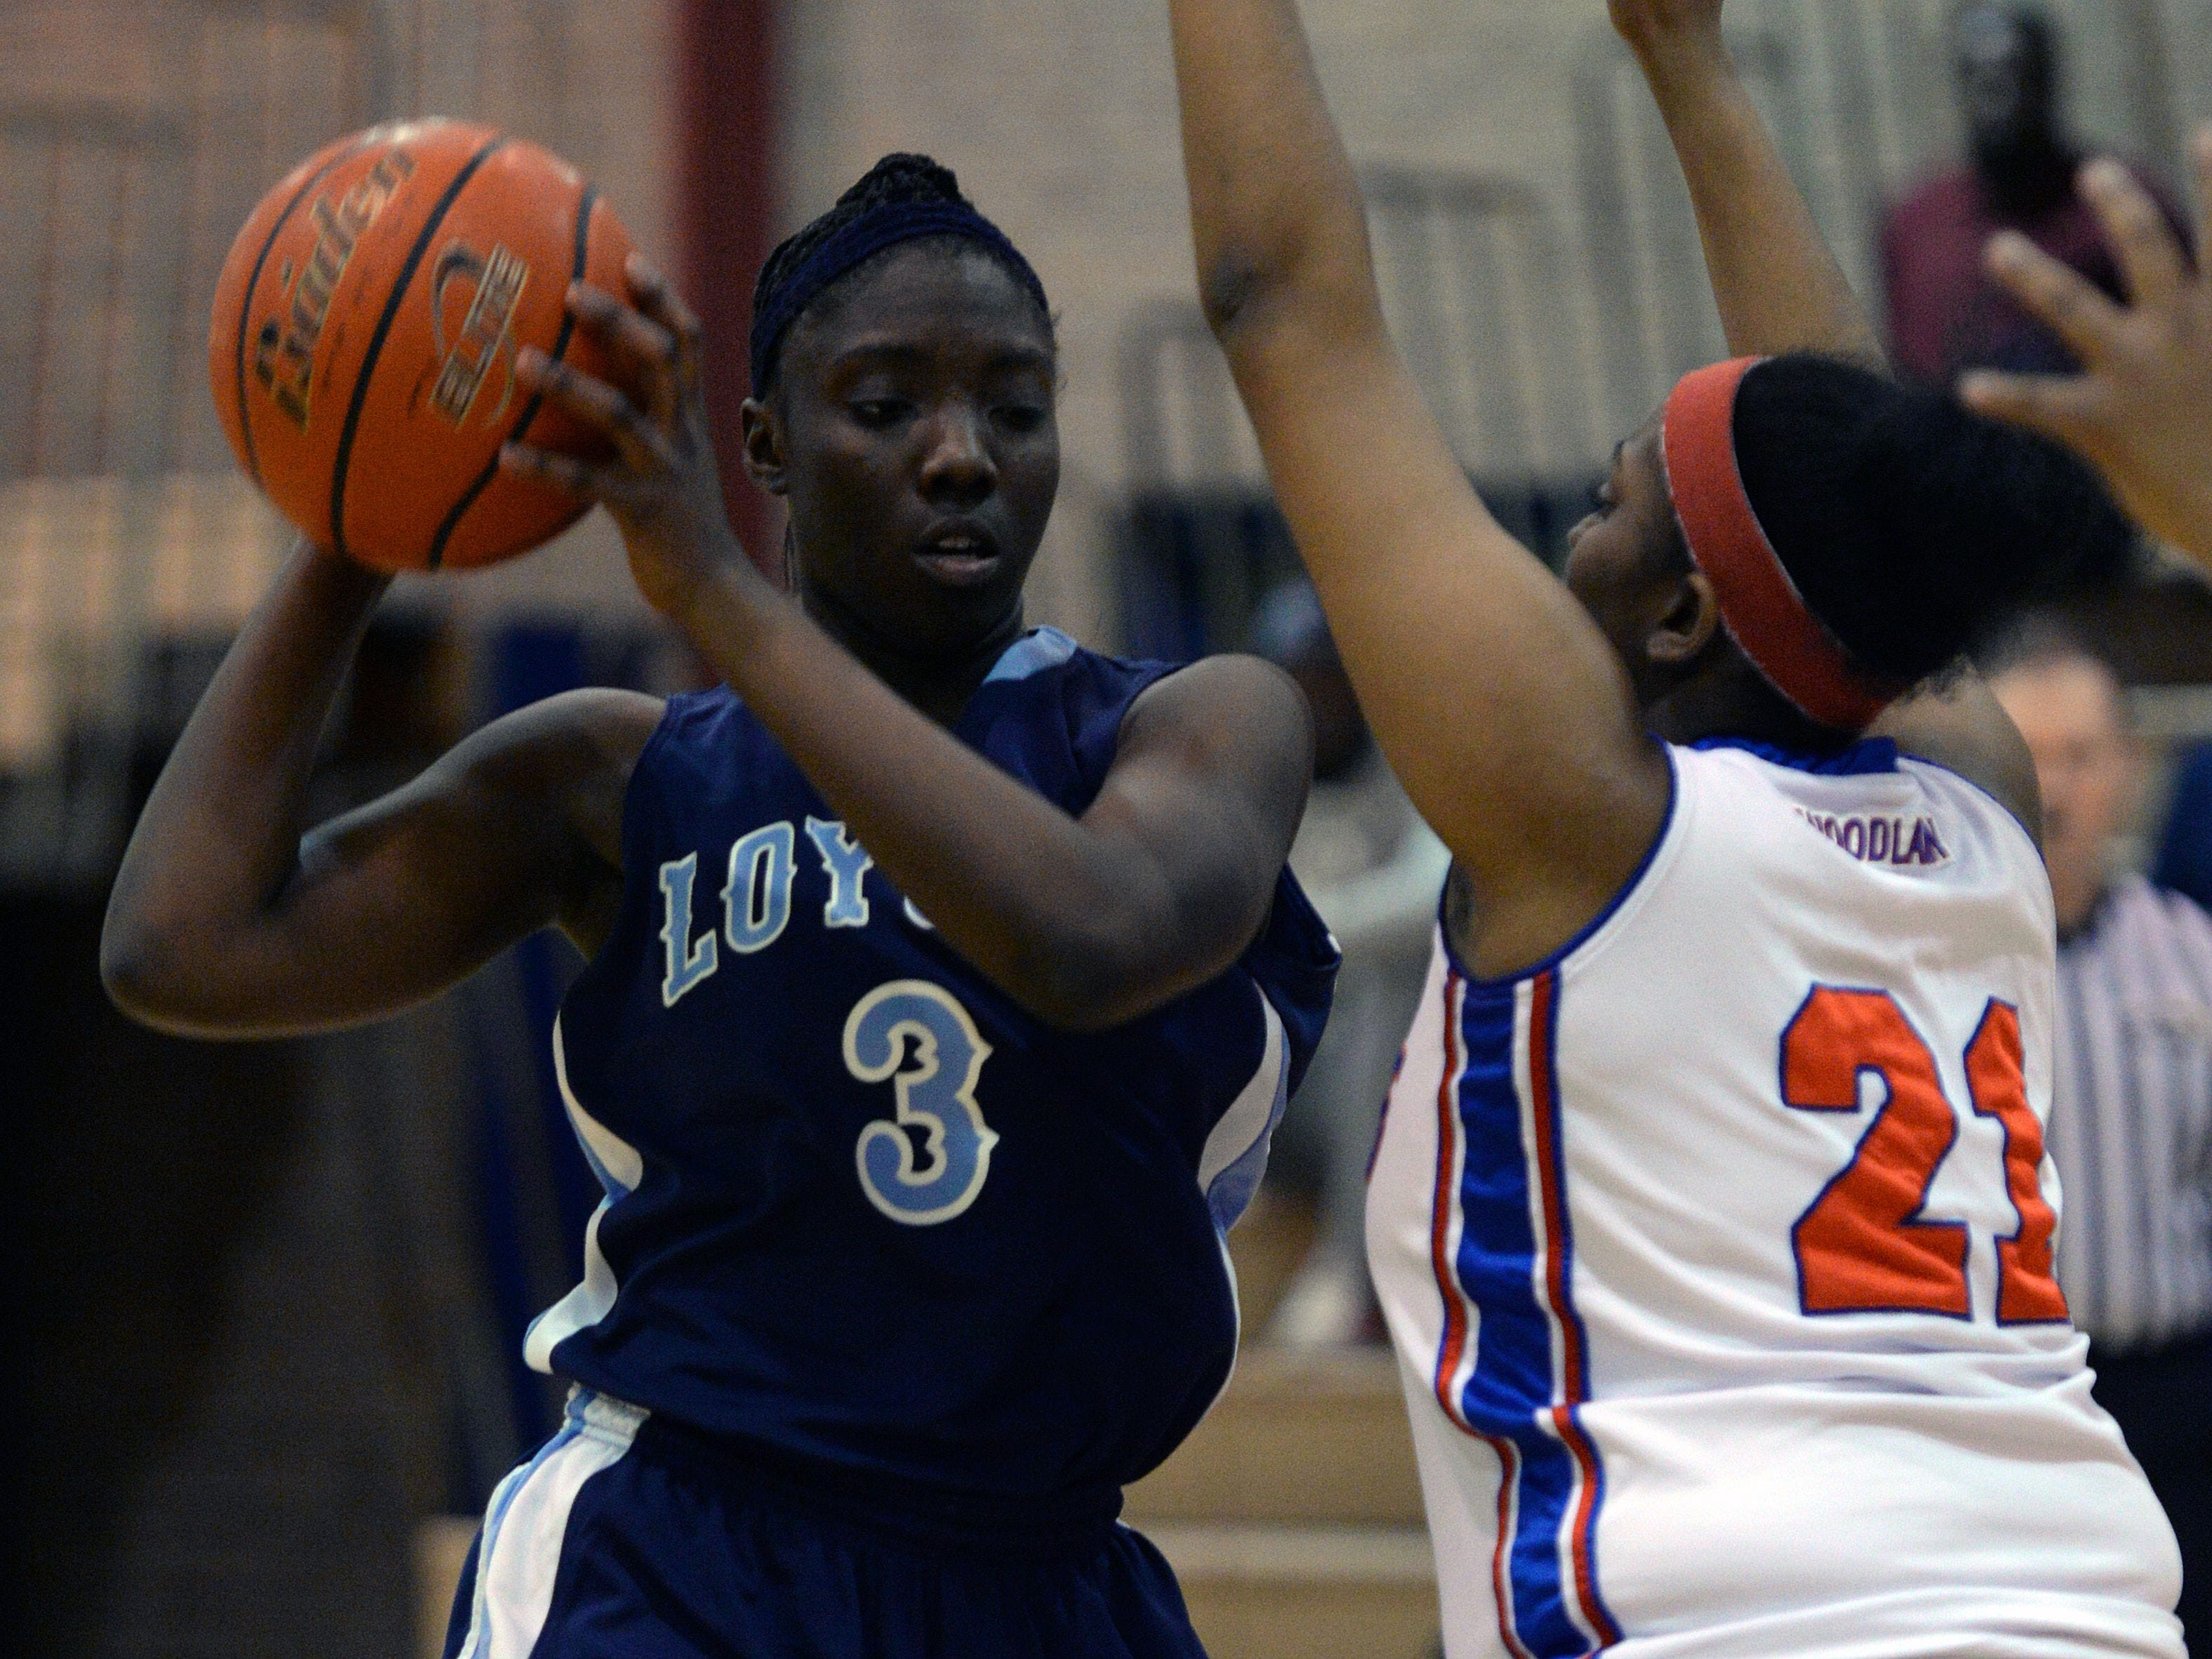 Loyola's Amber Smith sets up against Woodlawn's L. Whitaker.